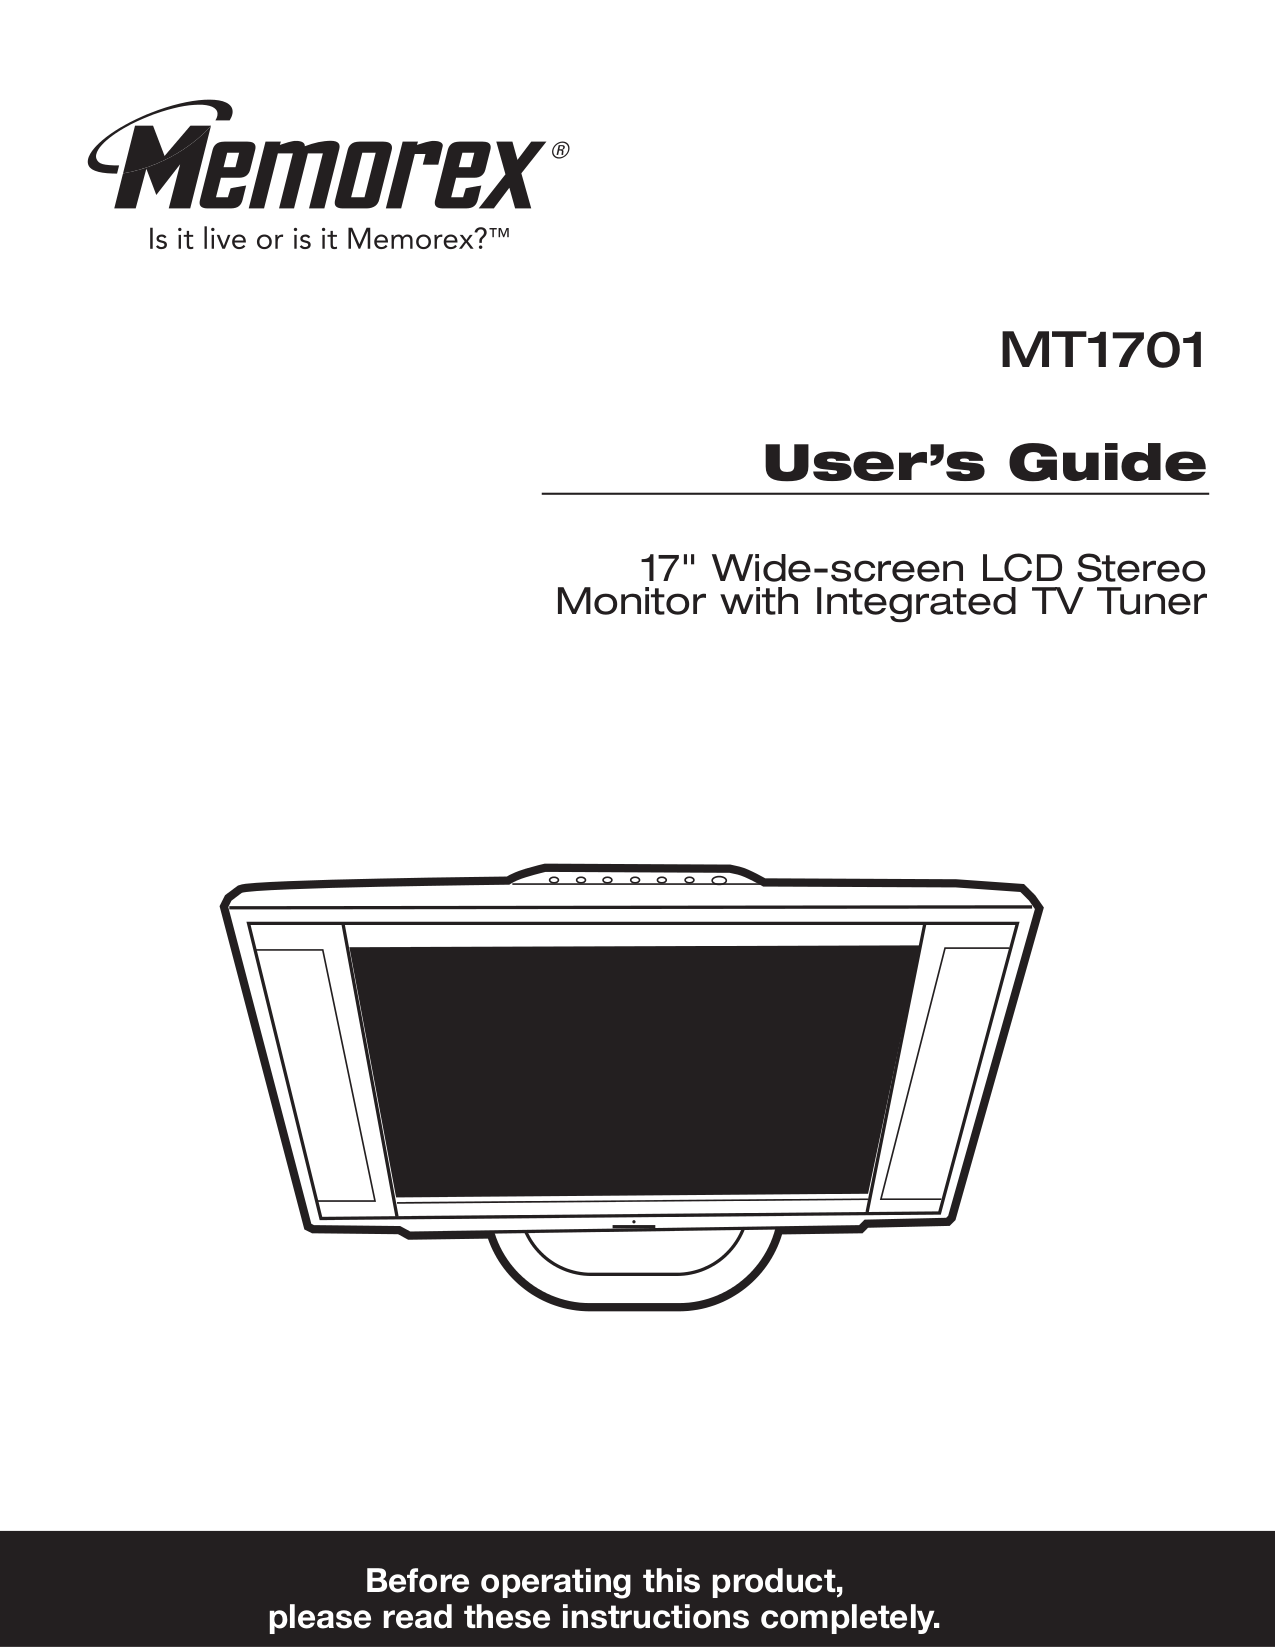 where can you download a memorex manual